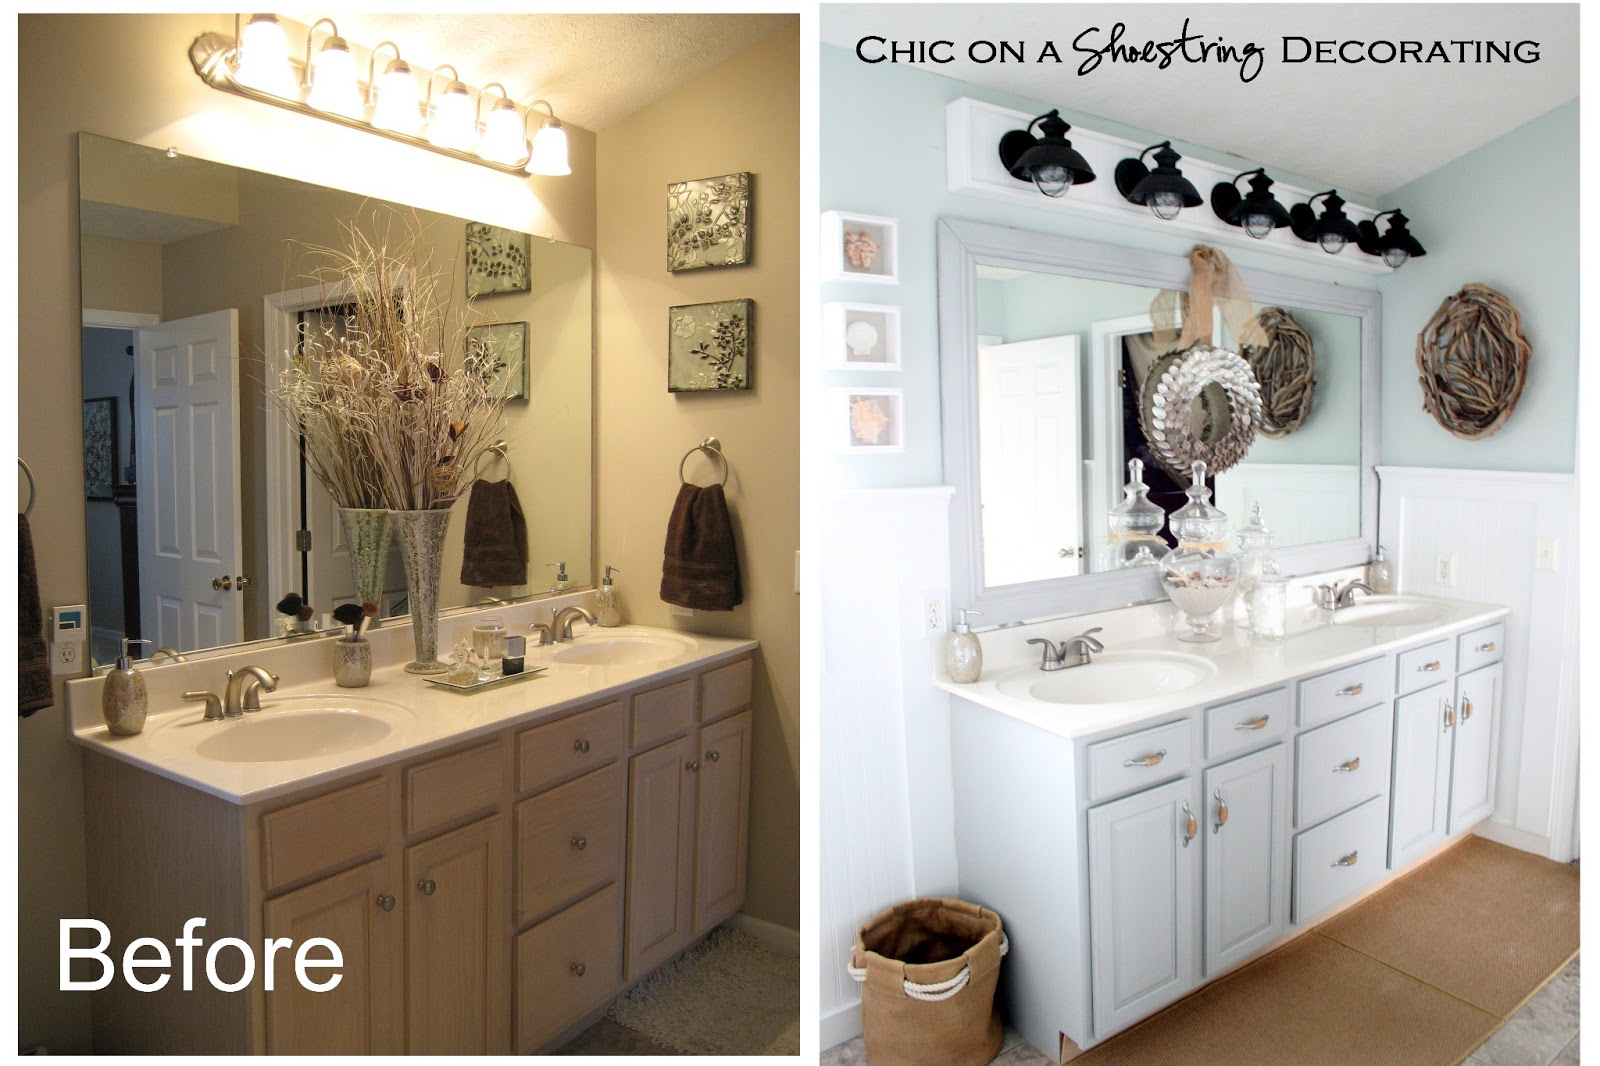 beach coastal bathroom by chic on a shoestring decorating - Painted Bathroom Cabinets Before And After